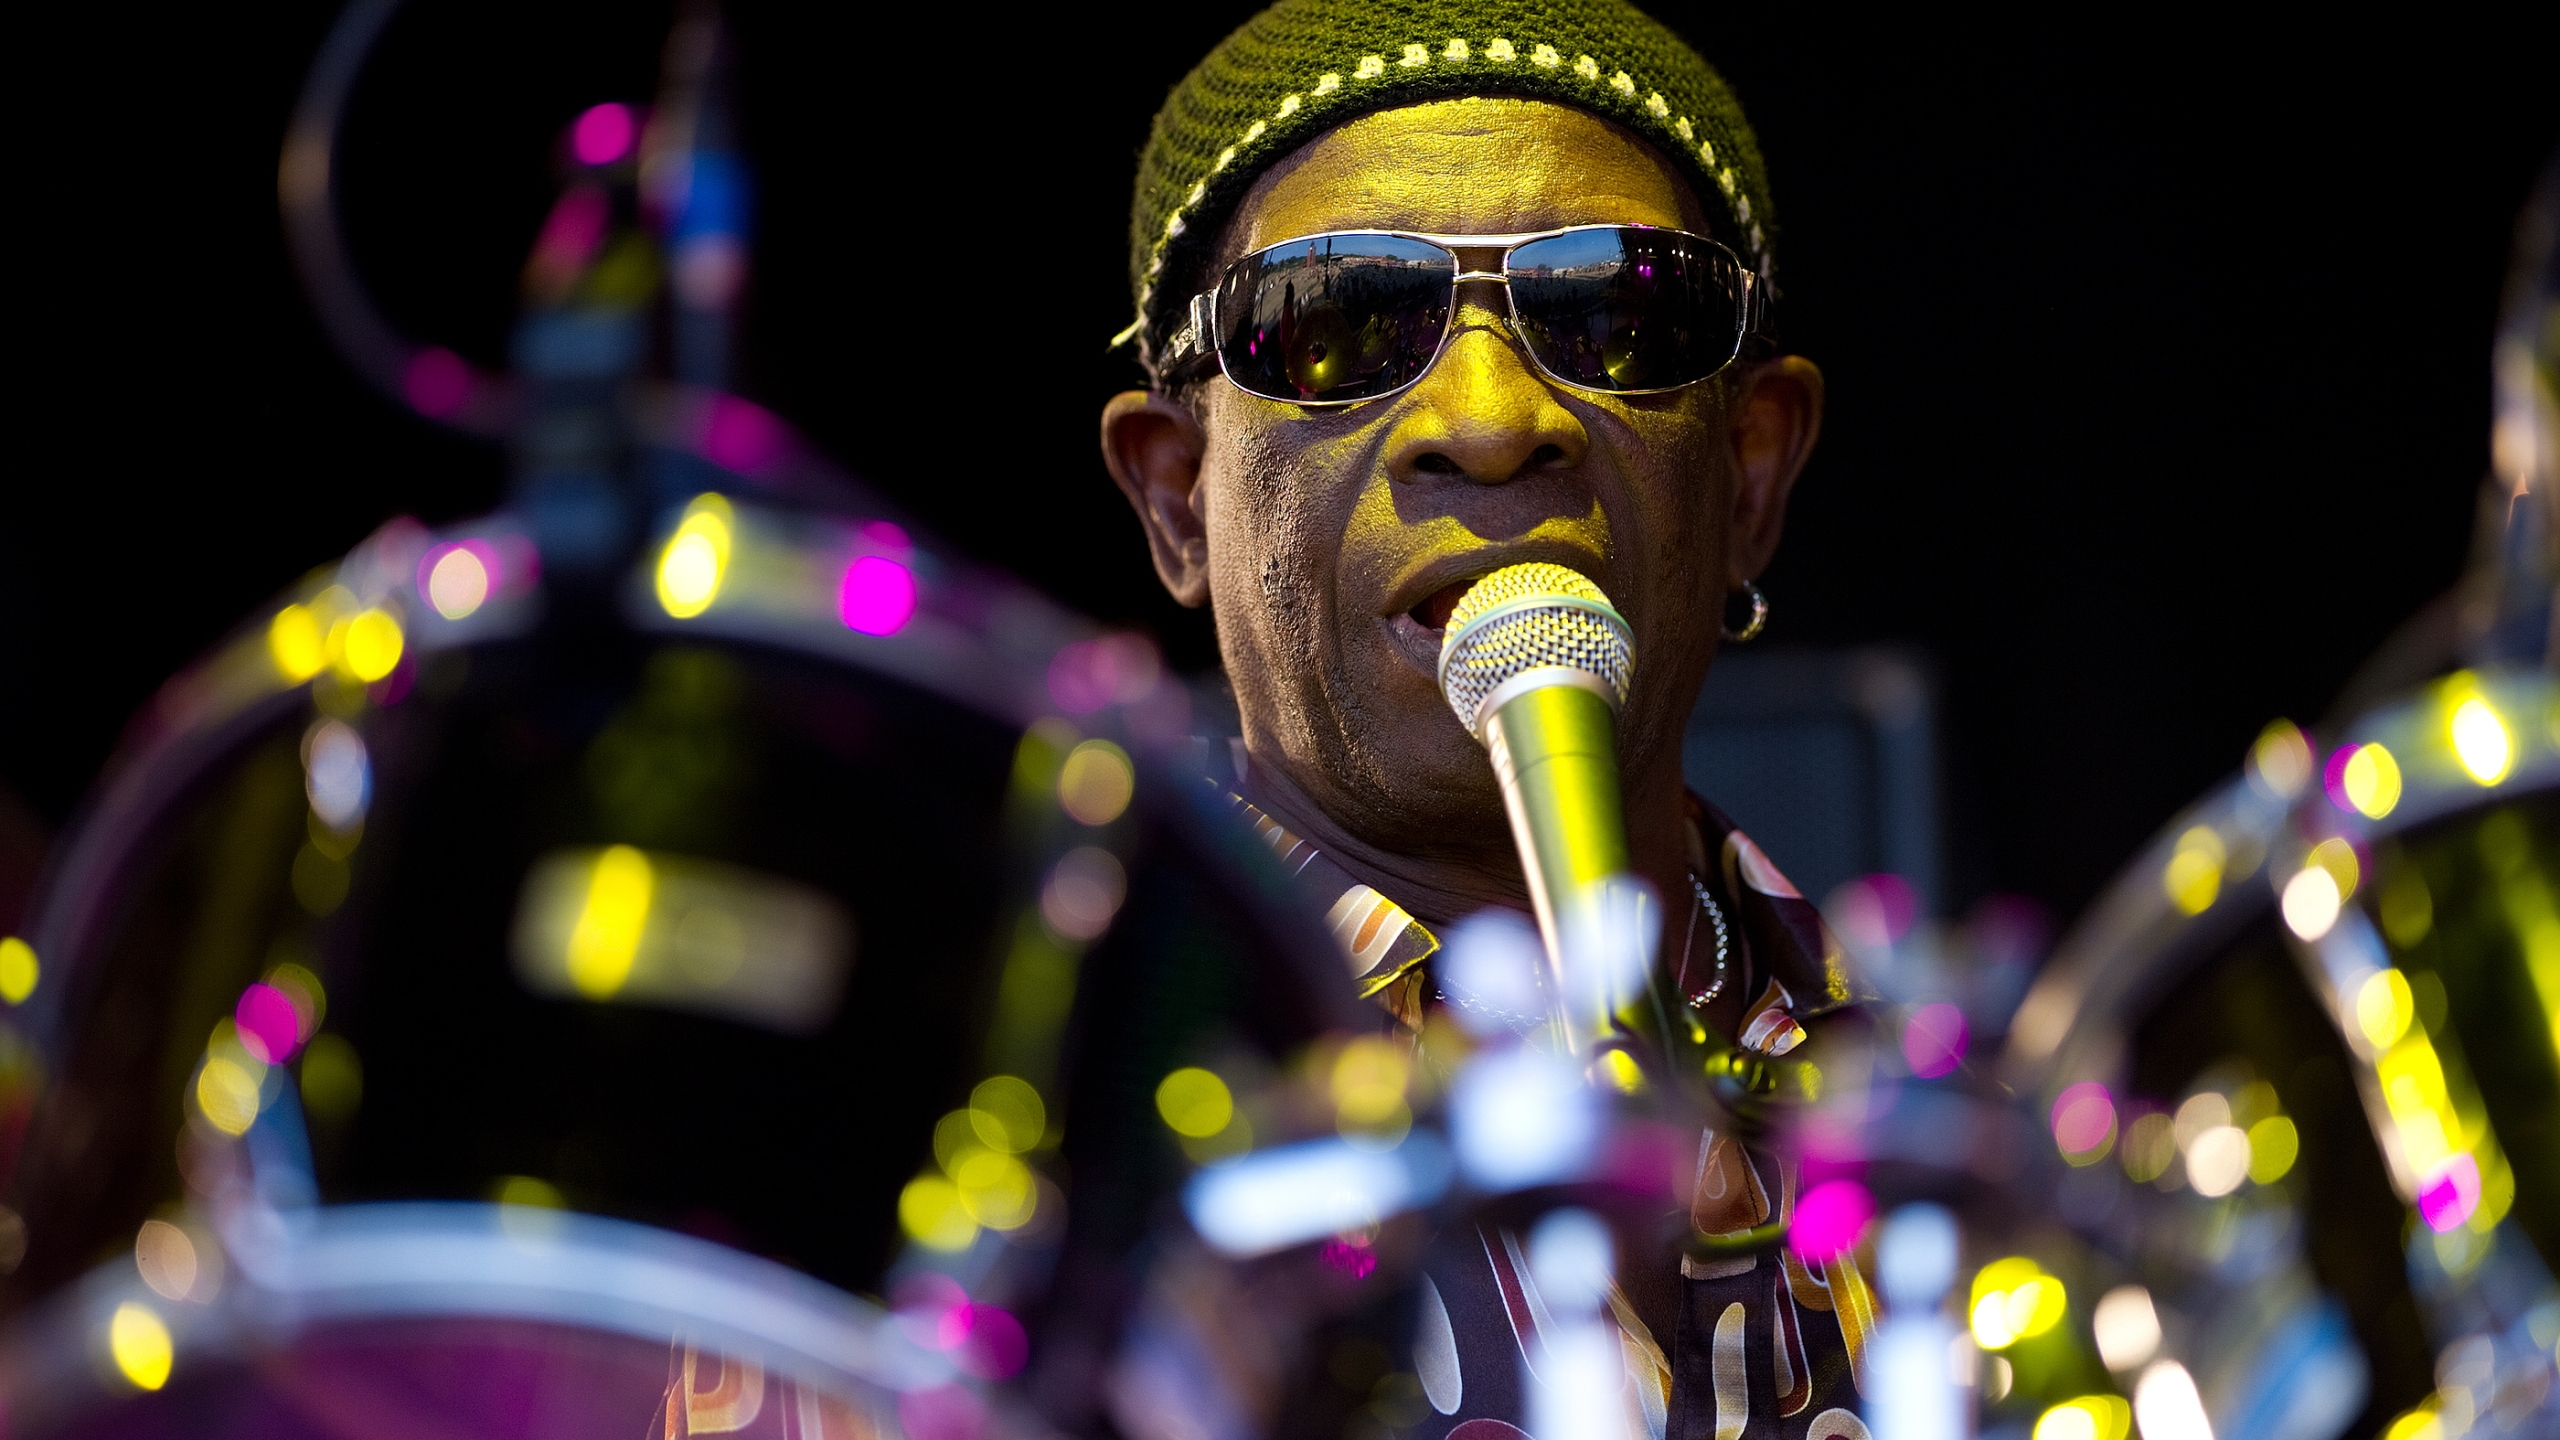 Nigerian drummer Tony Allen performs at the Glastonbury festival near Pilton, England, on June 27, 2010. (Credit: Leon Neal / AFP / Getty Images)